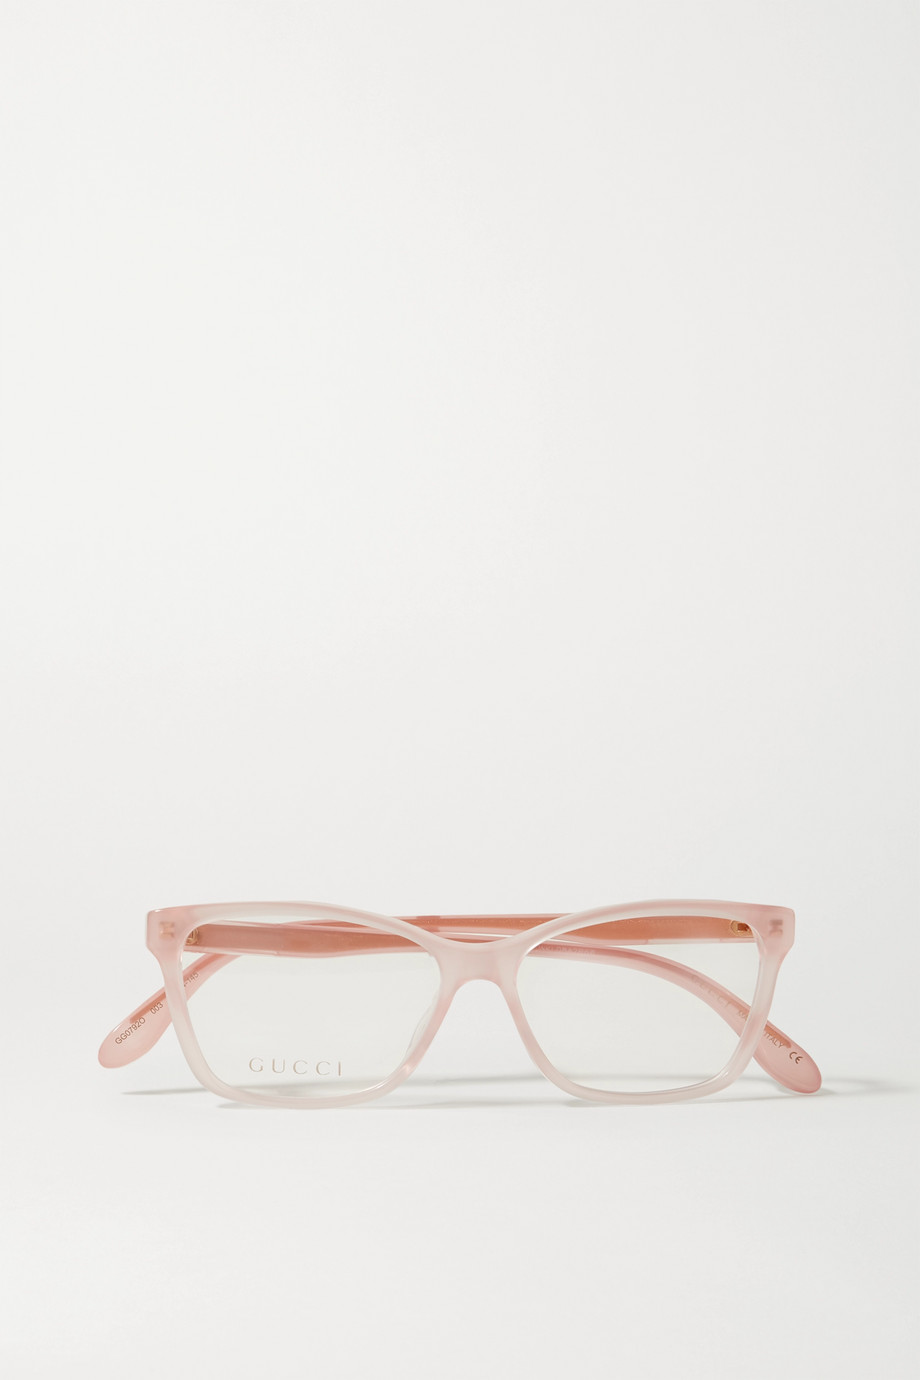 GUCCI D-frame acetate optical glasses